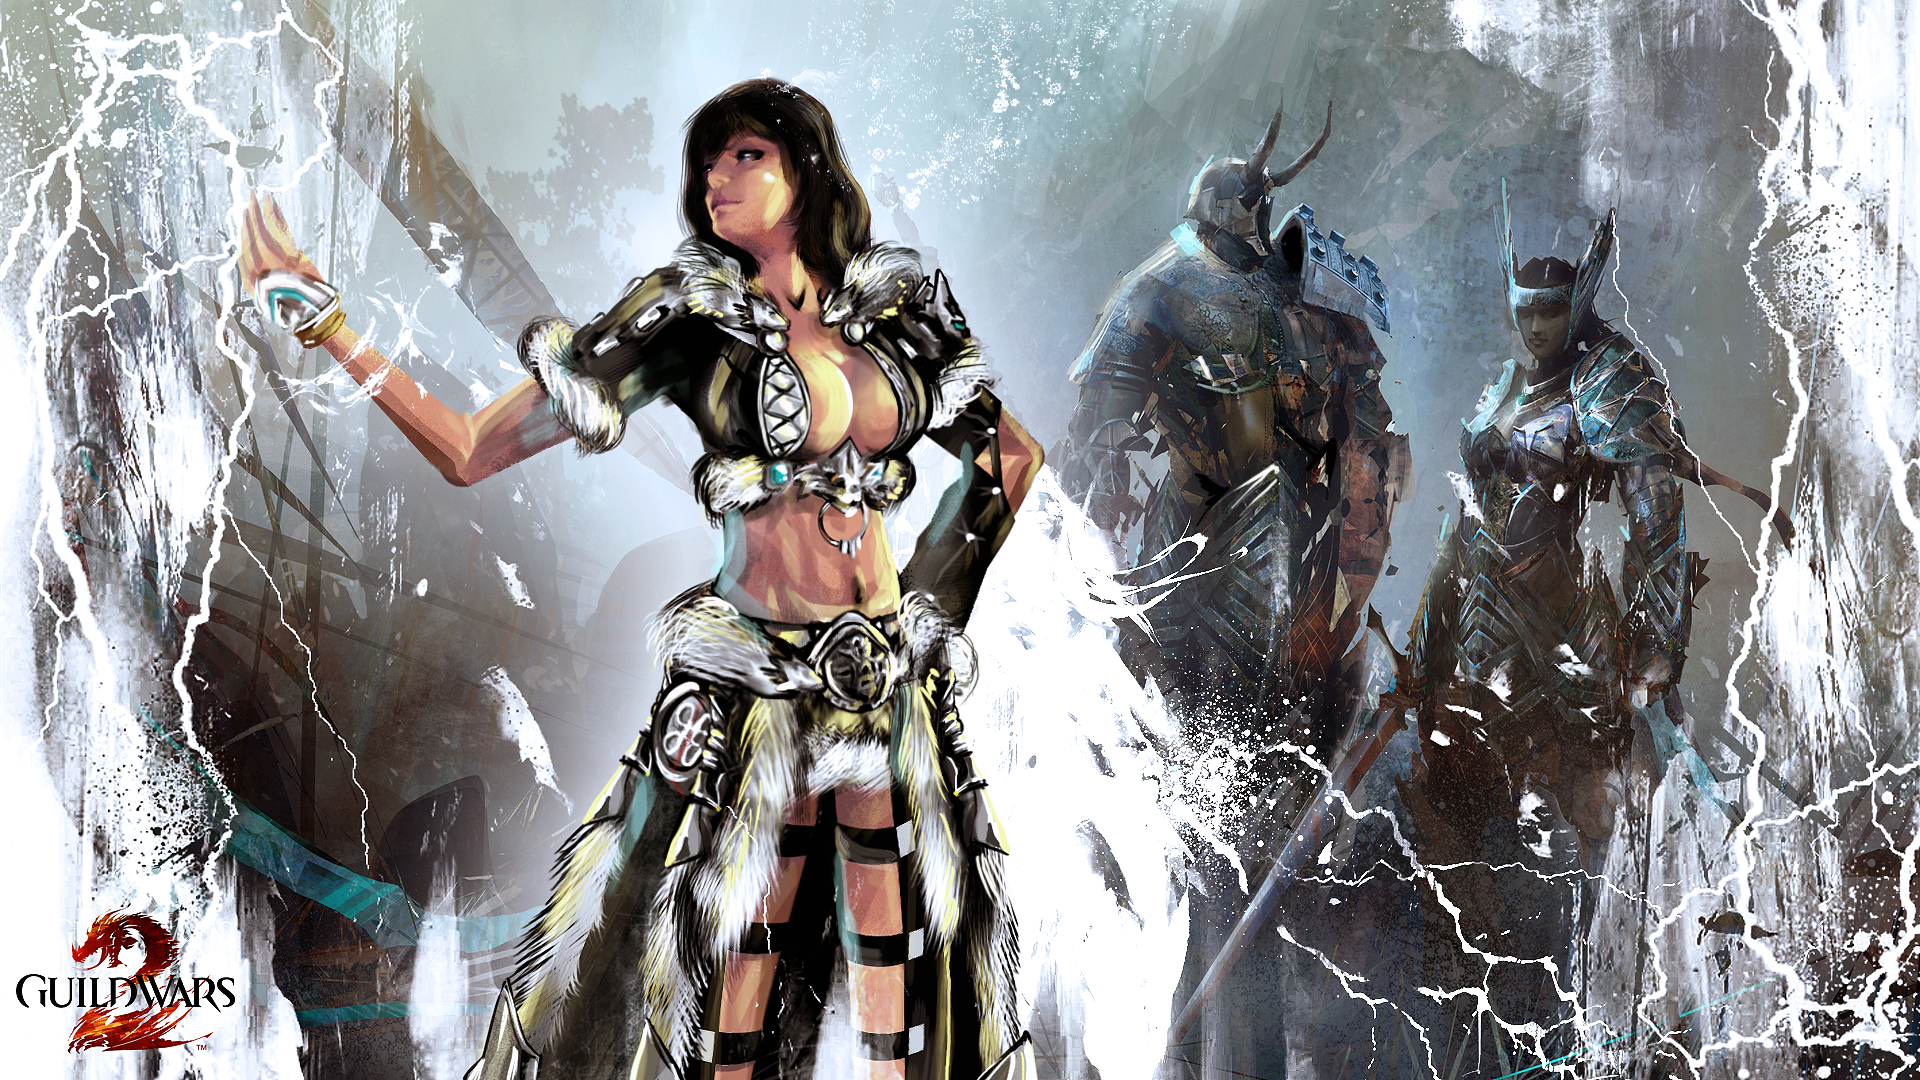 Wallpapers Of The Day Guild Wars 2 1920x1080 Px Guild Wars 2